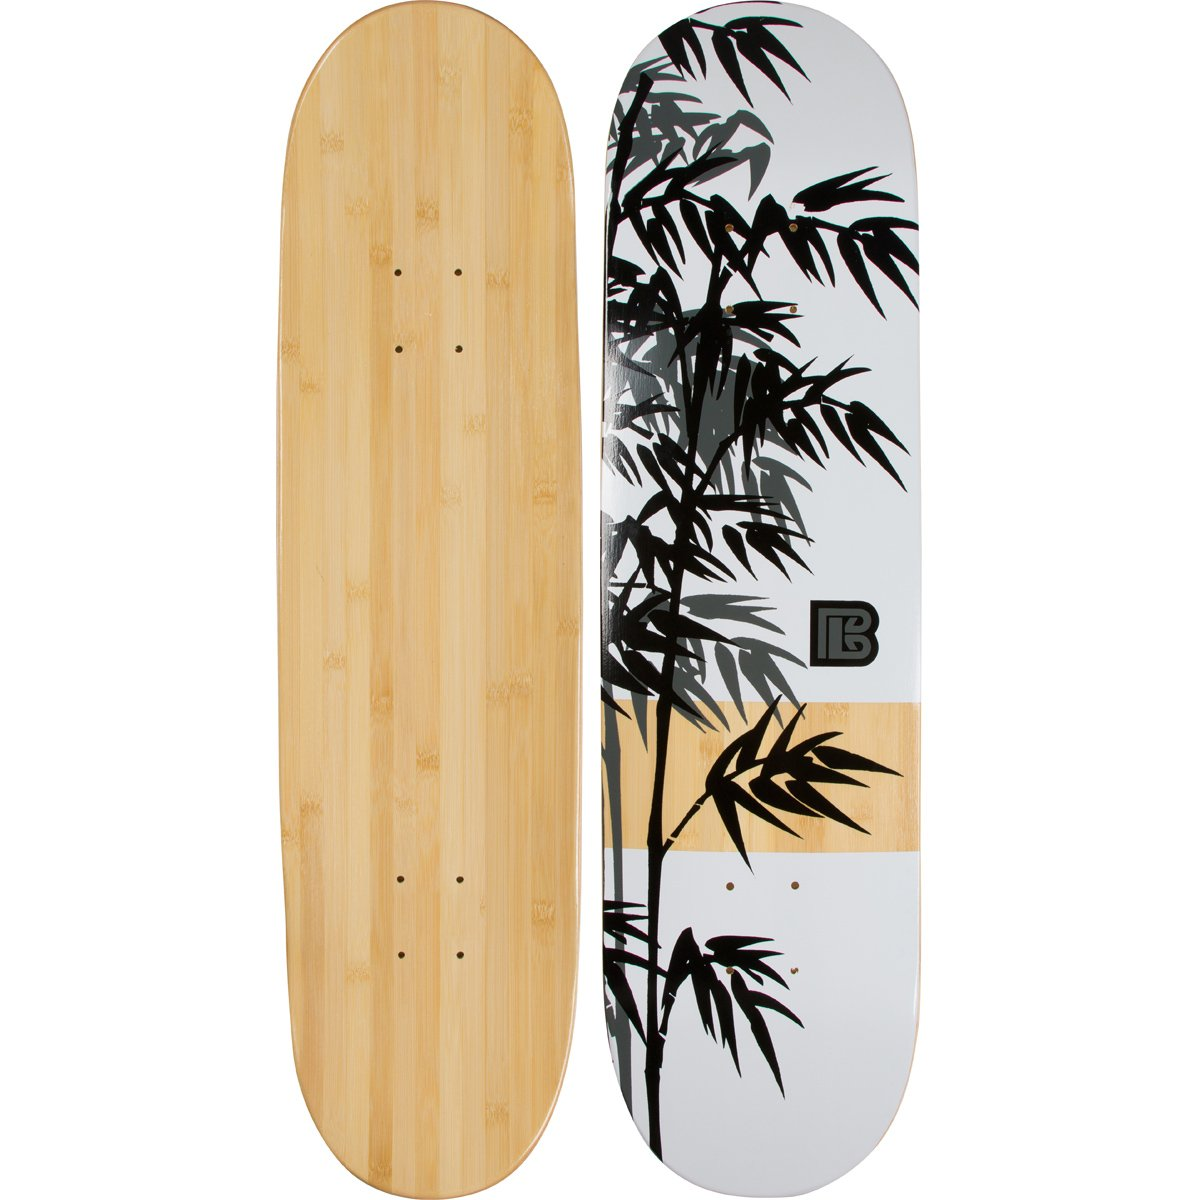 Amazon.com : Bamboo Skateboards Moso Graphic Skateboard Deck with a ...